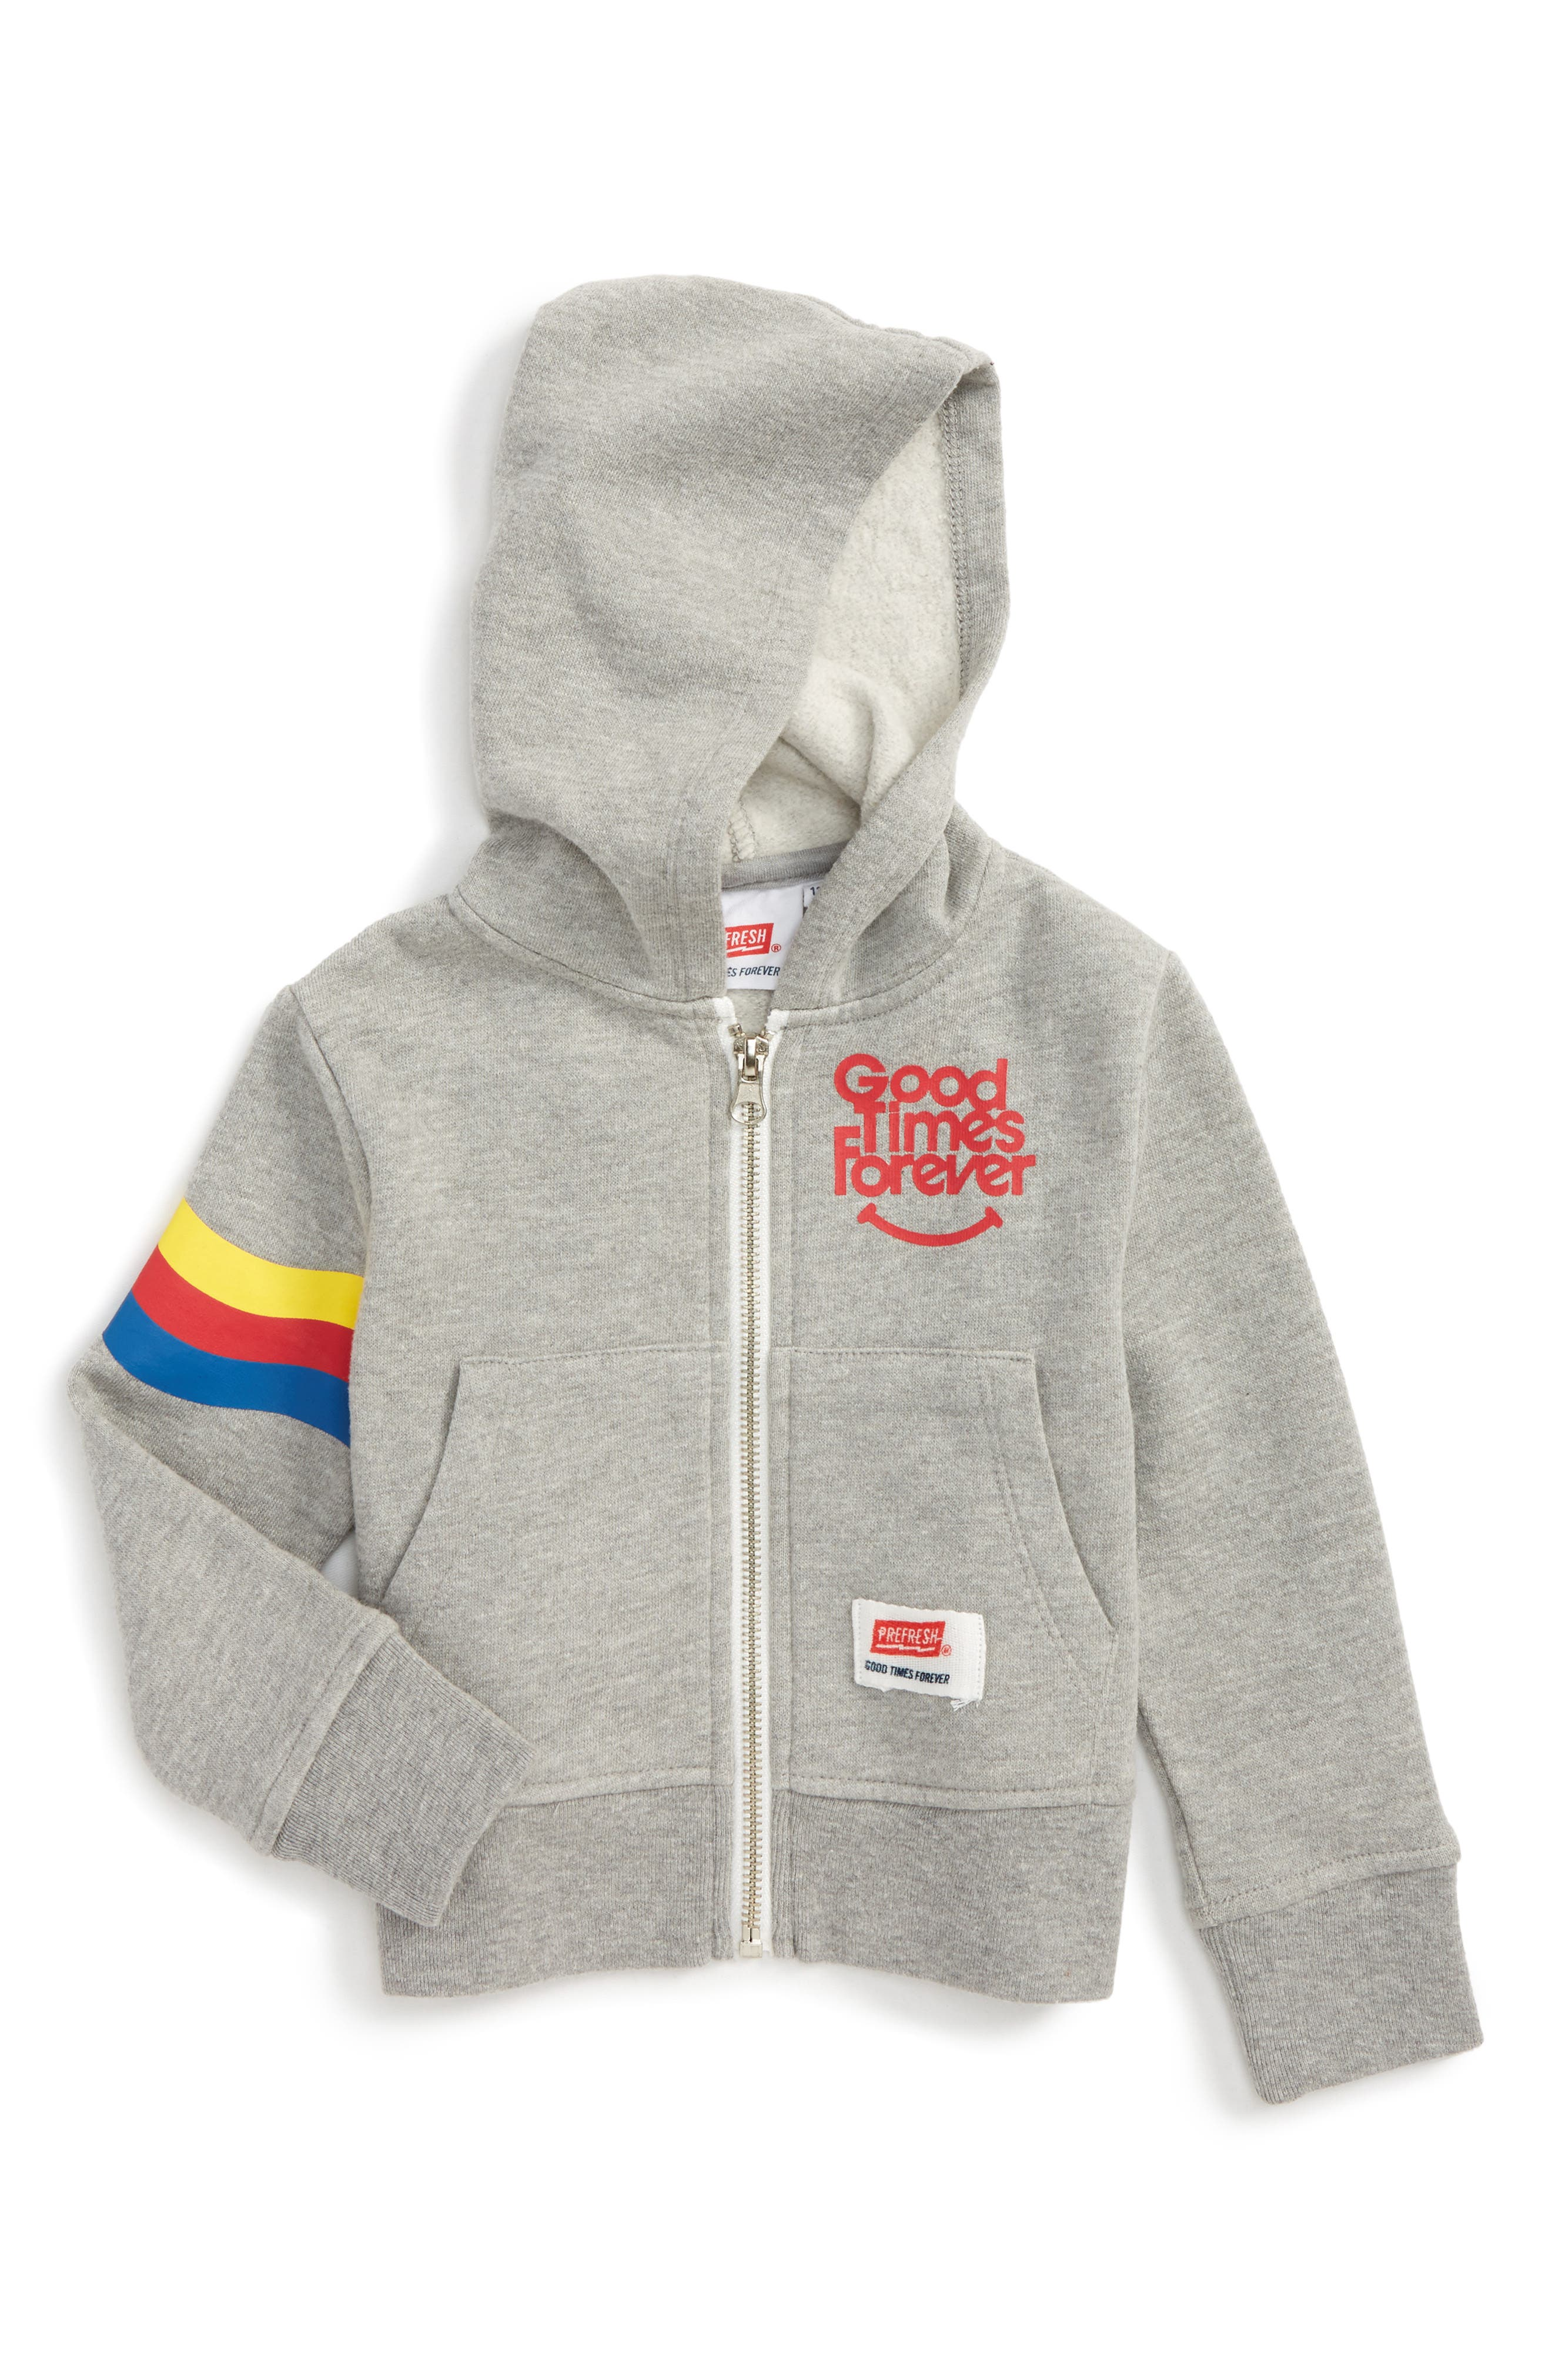 Prefresh Good Times Forever Zip Hoodie (Baby Boys)